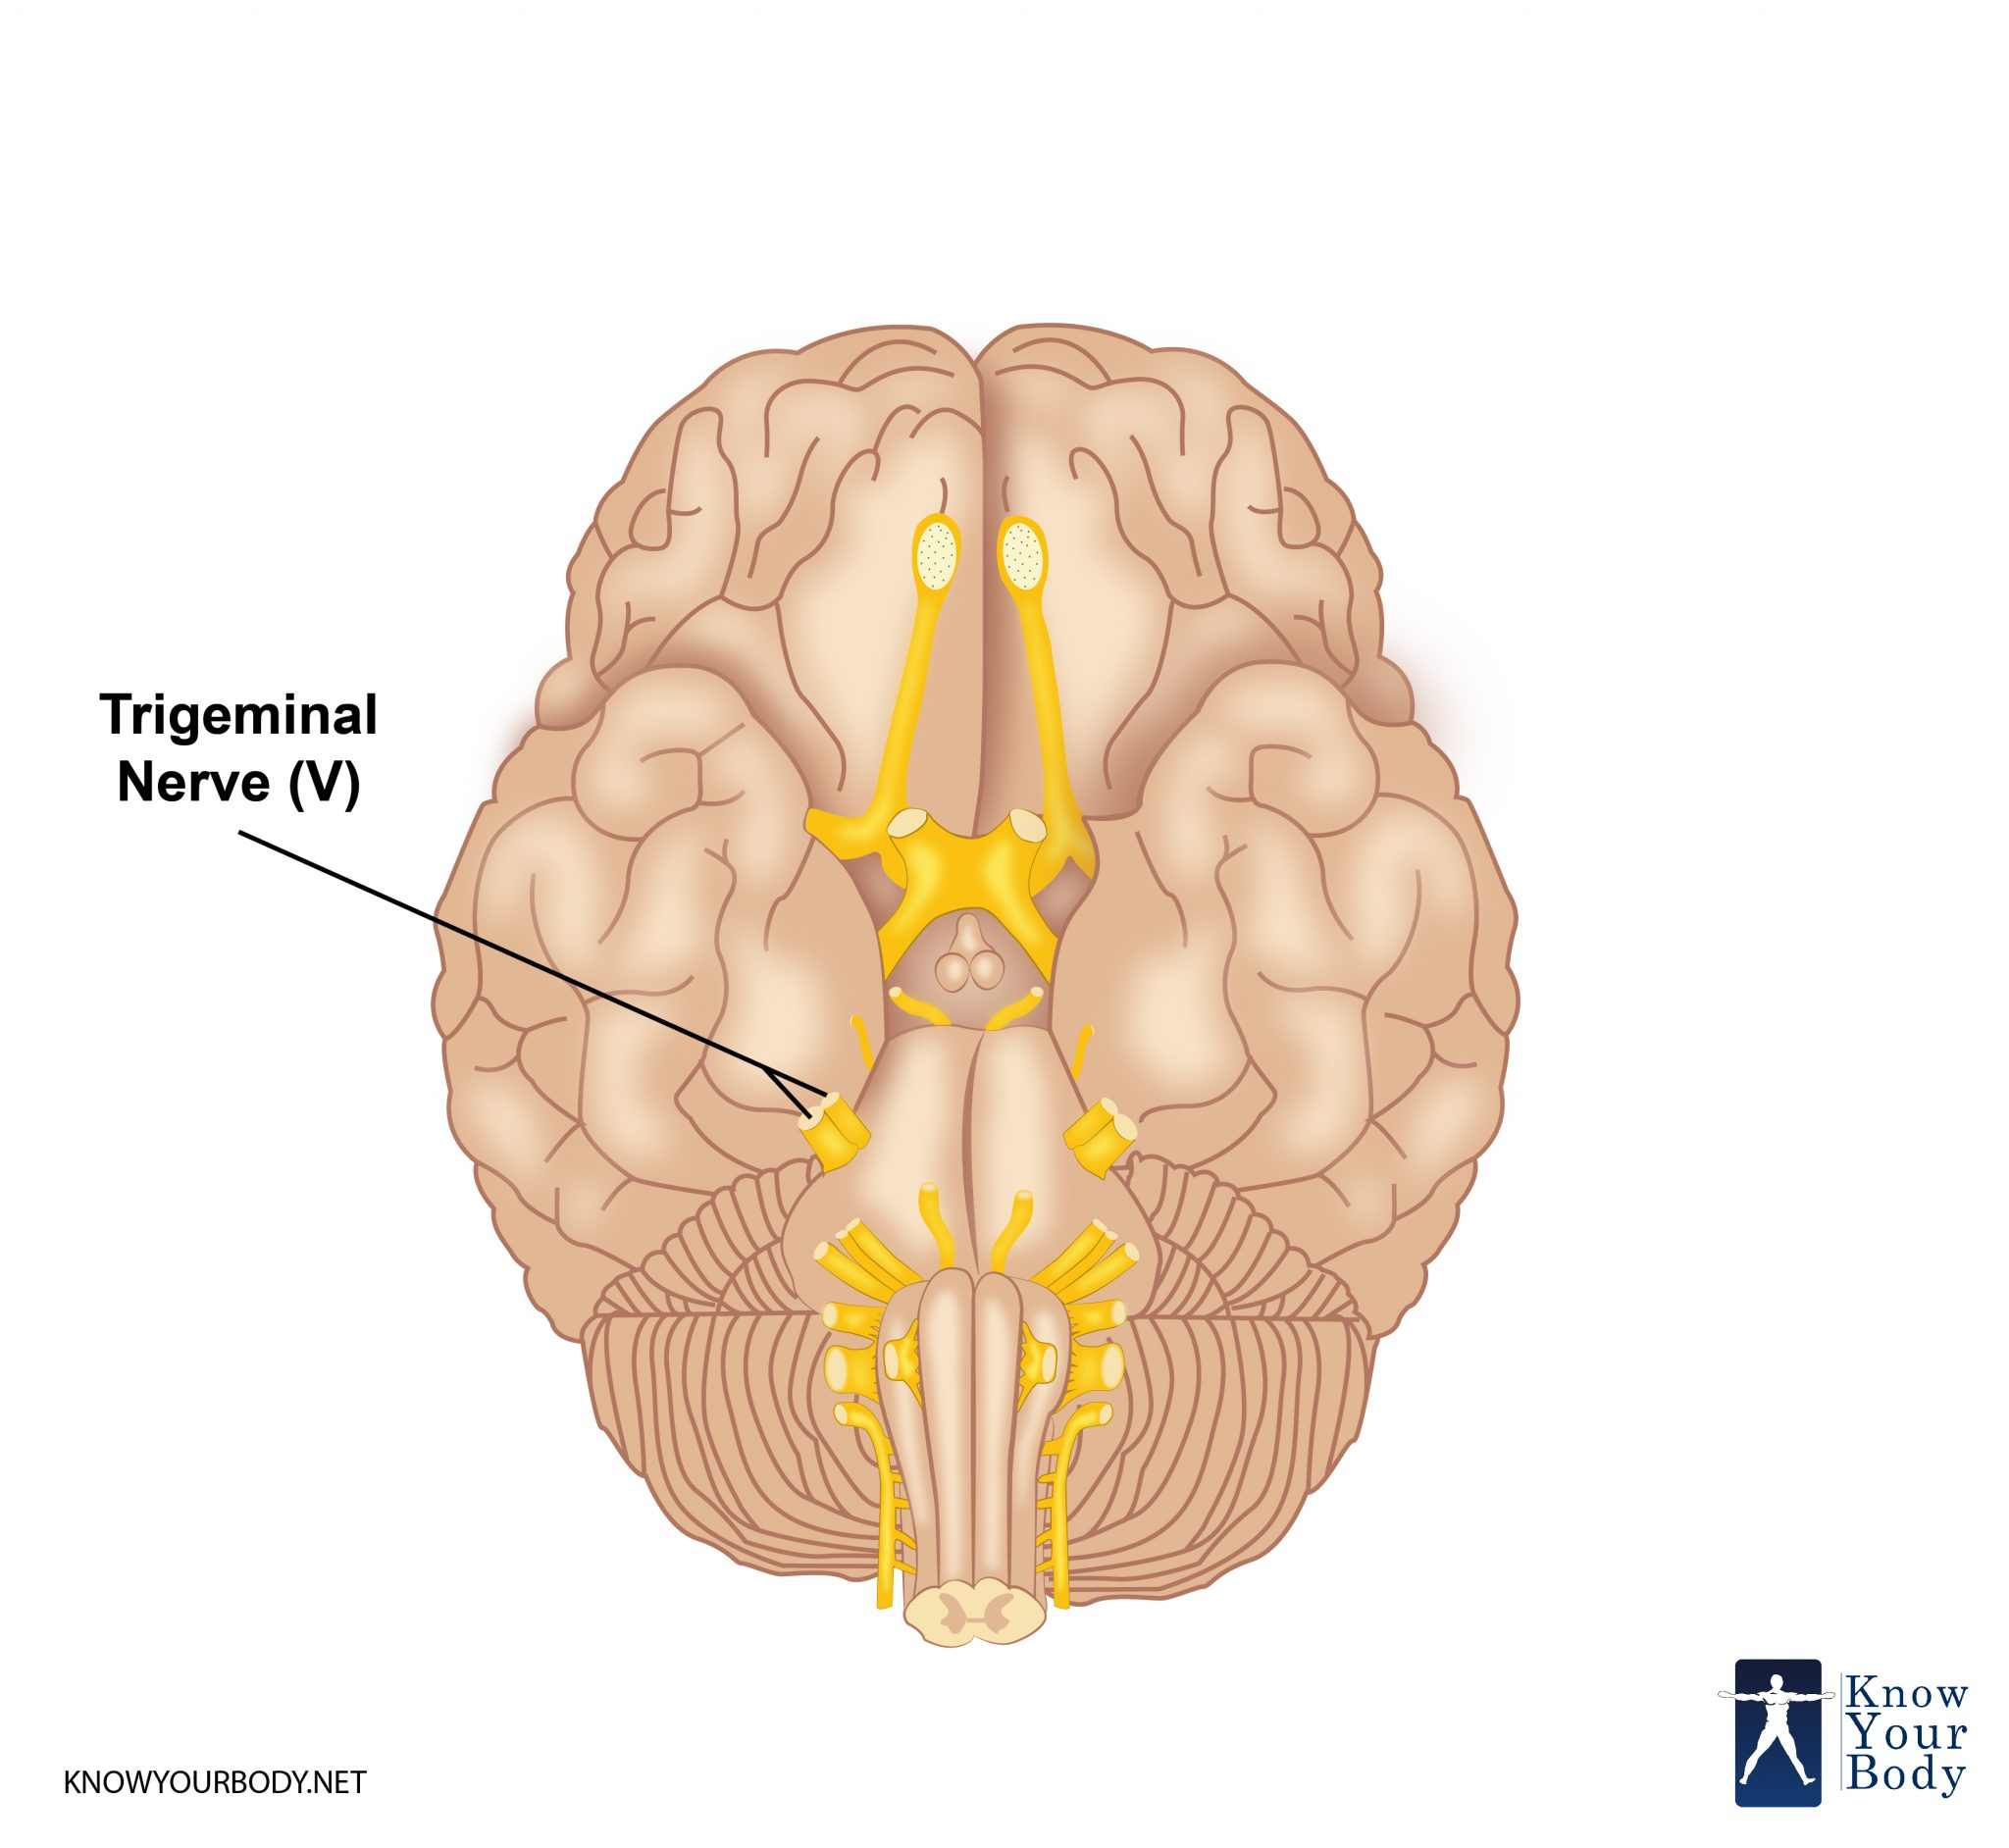 Trigeminal Nerve - Function, Branches, Anatomy and FAQs